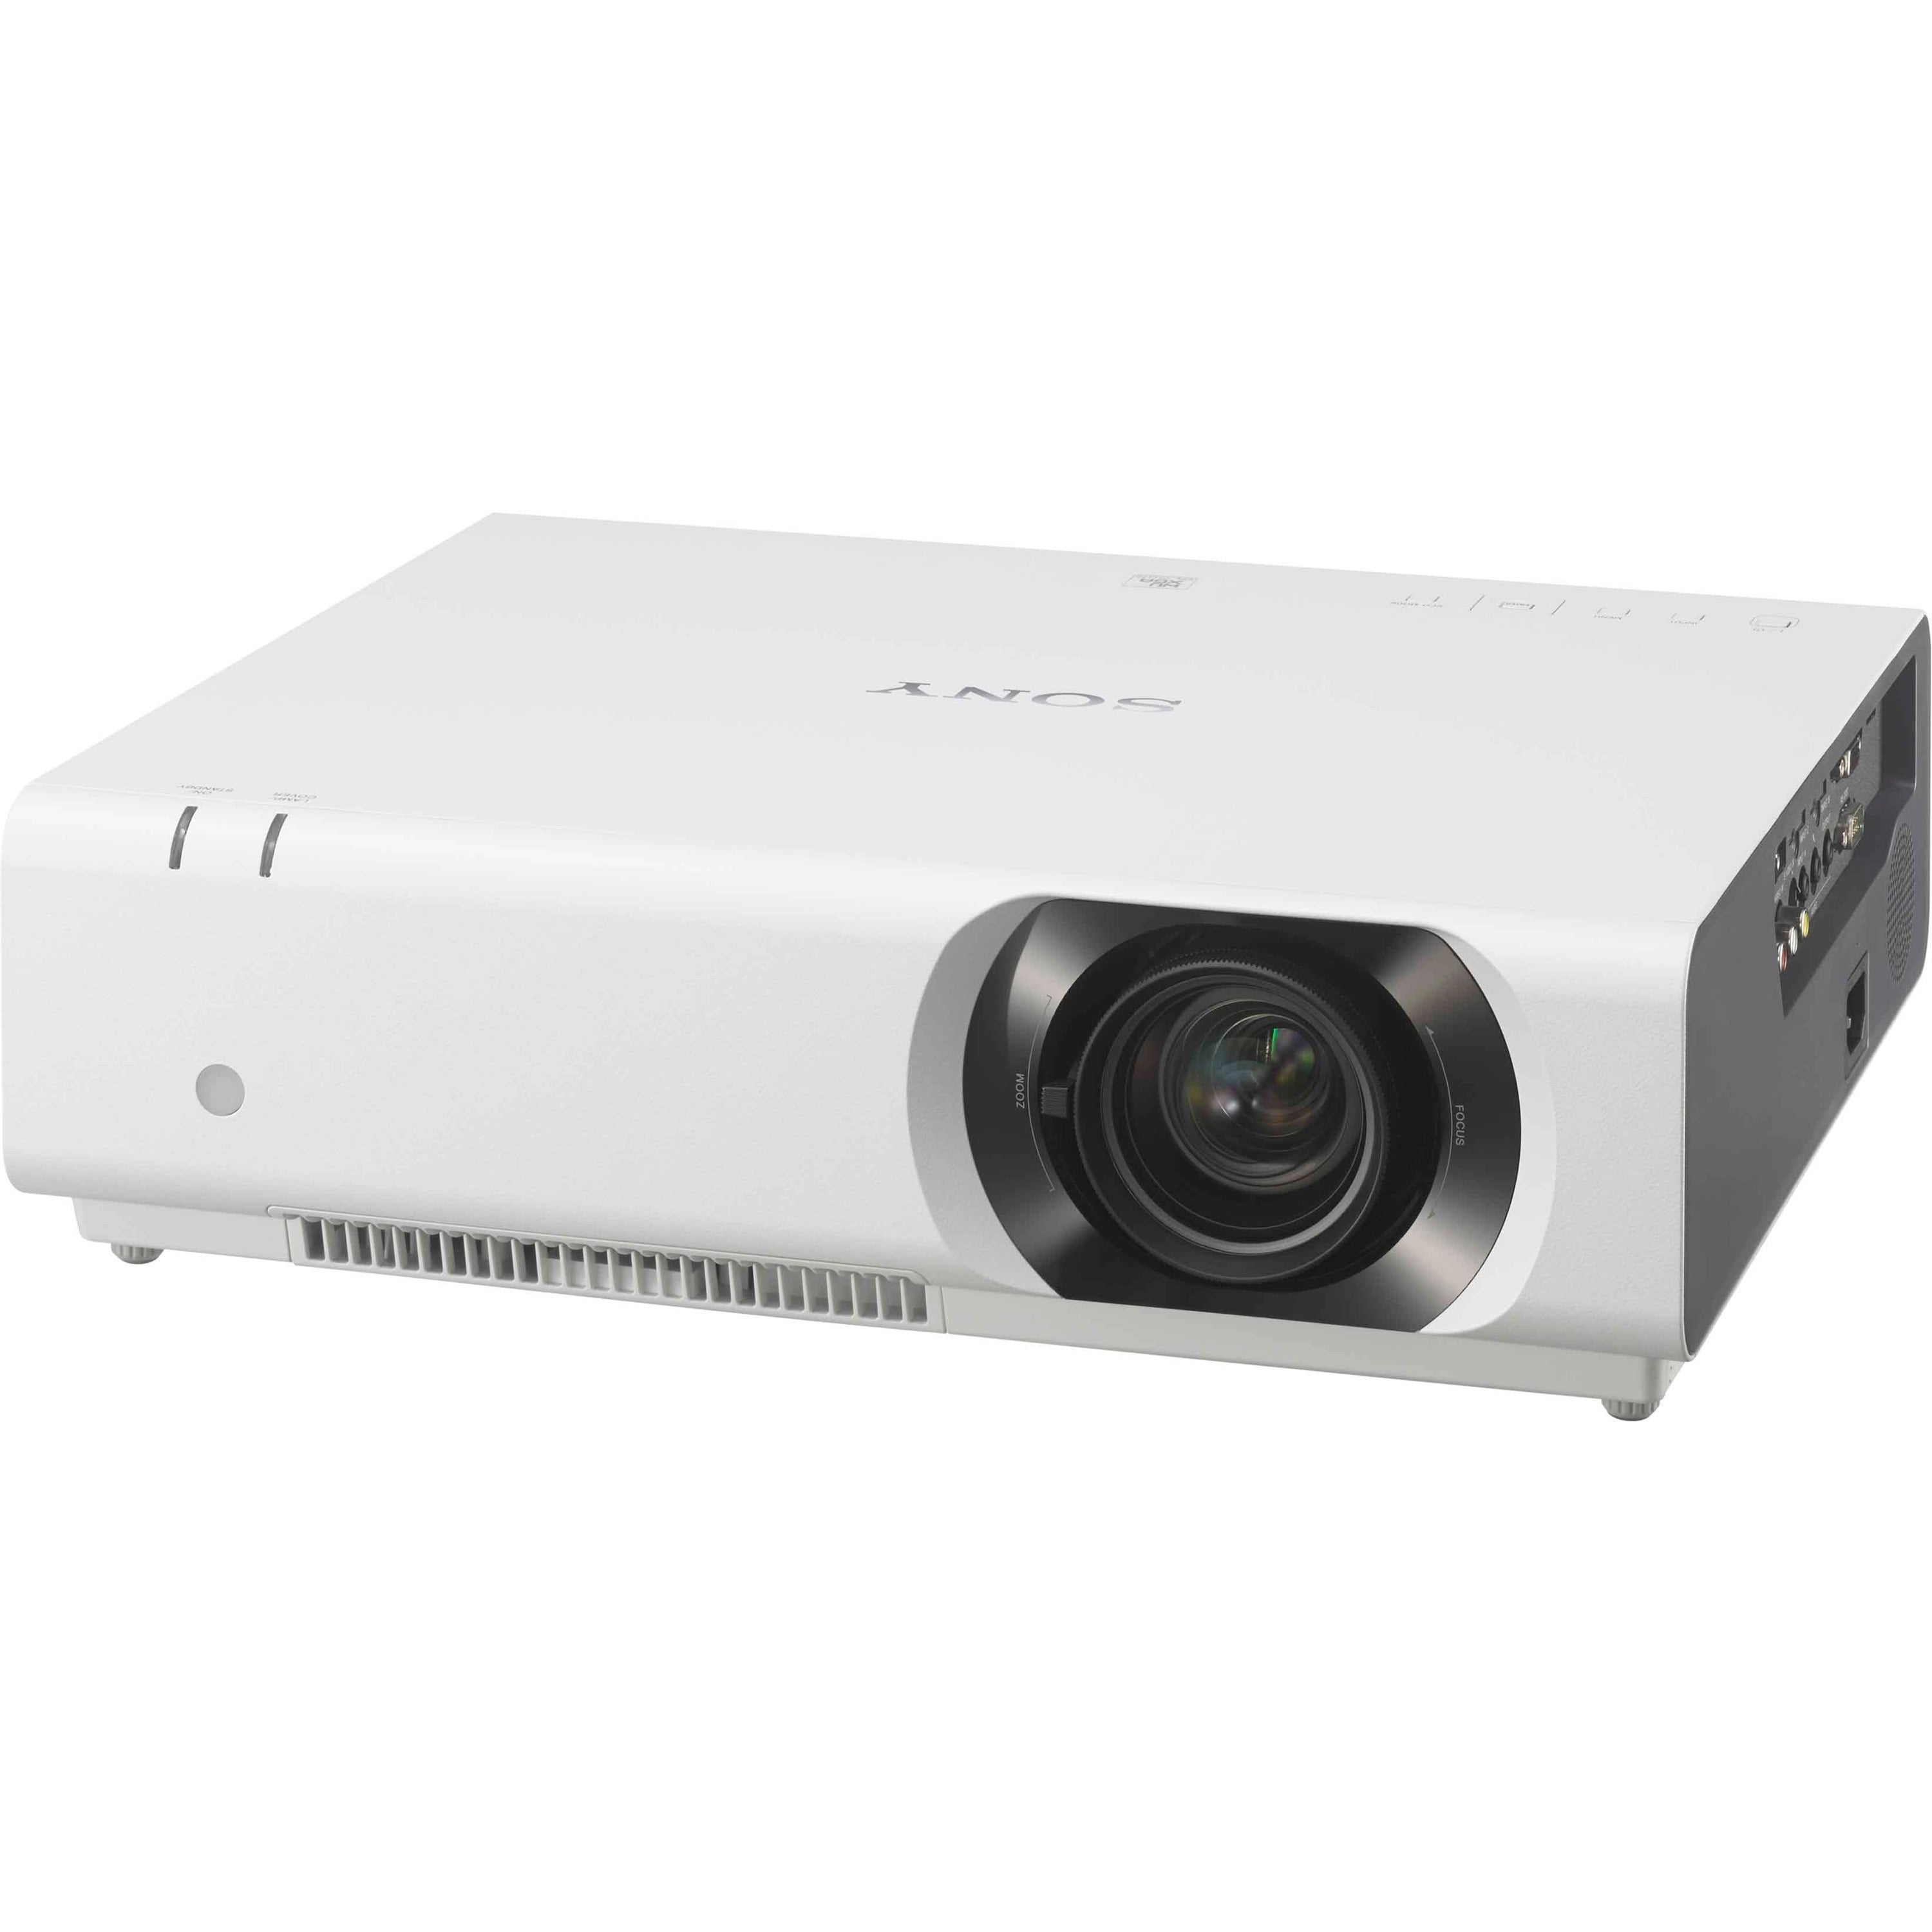 Sony VPL-CH375 LCD Projector - 1125p - Hdtv - 16:10, Whit...